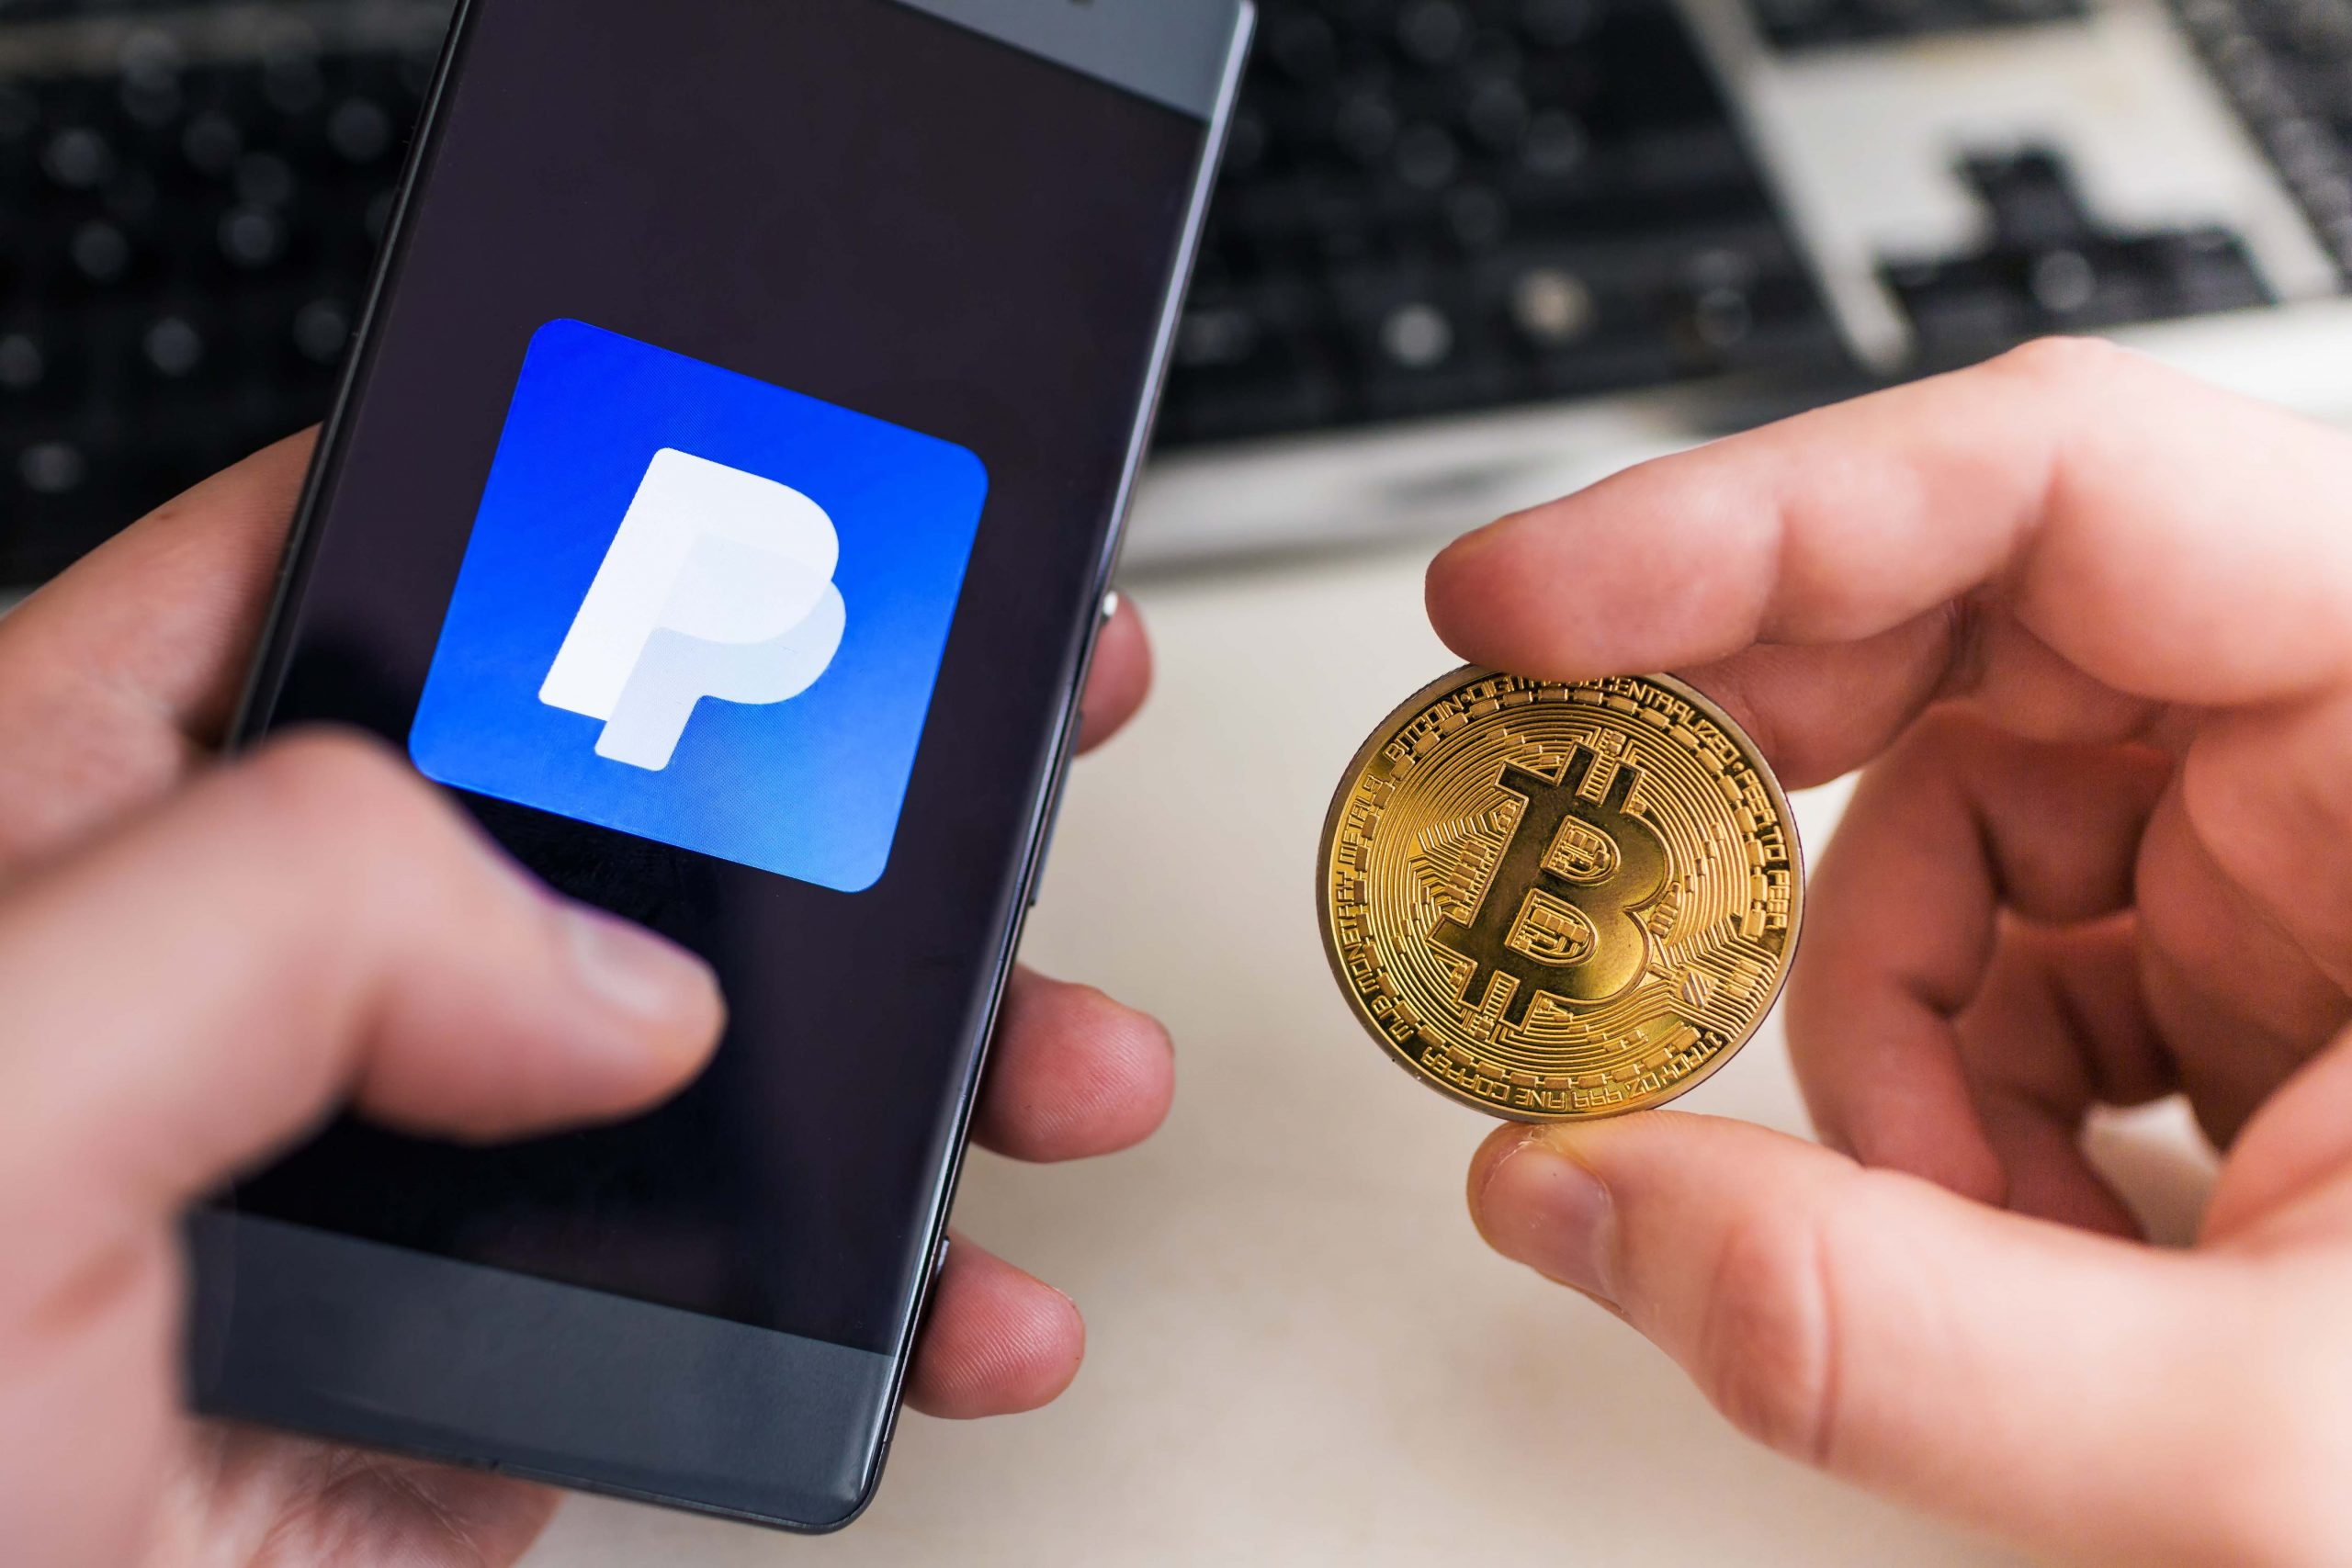 PayPal US users can now spend Five times more Bitcoin in a week